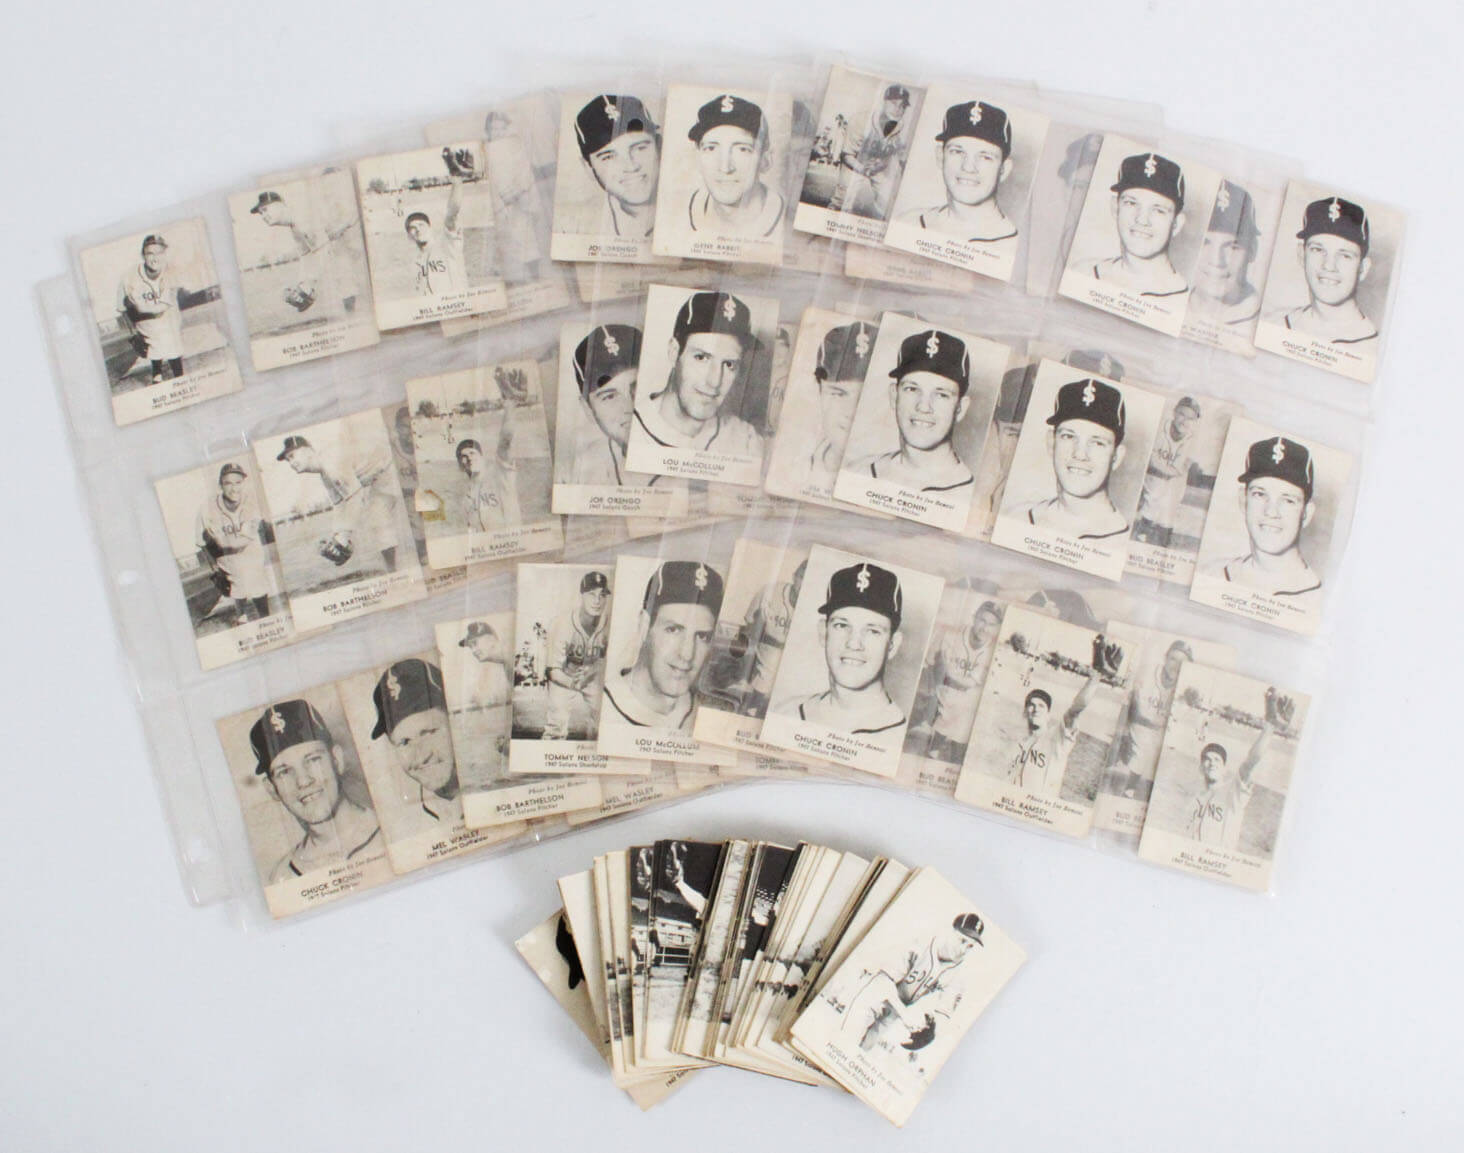 1947 Sunbeam Solons Baseball Card Partial Set 23/26 with Extras - (113 Cards)